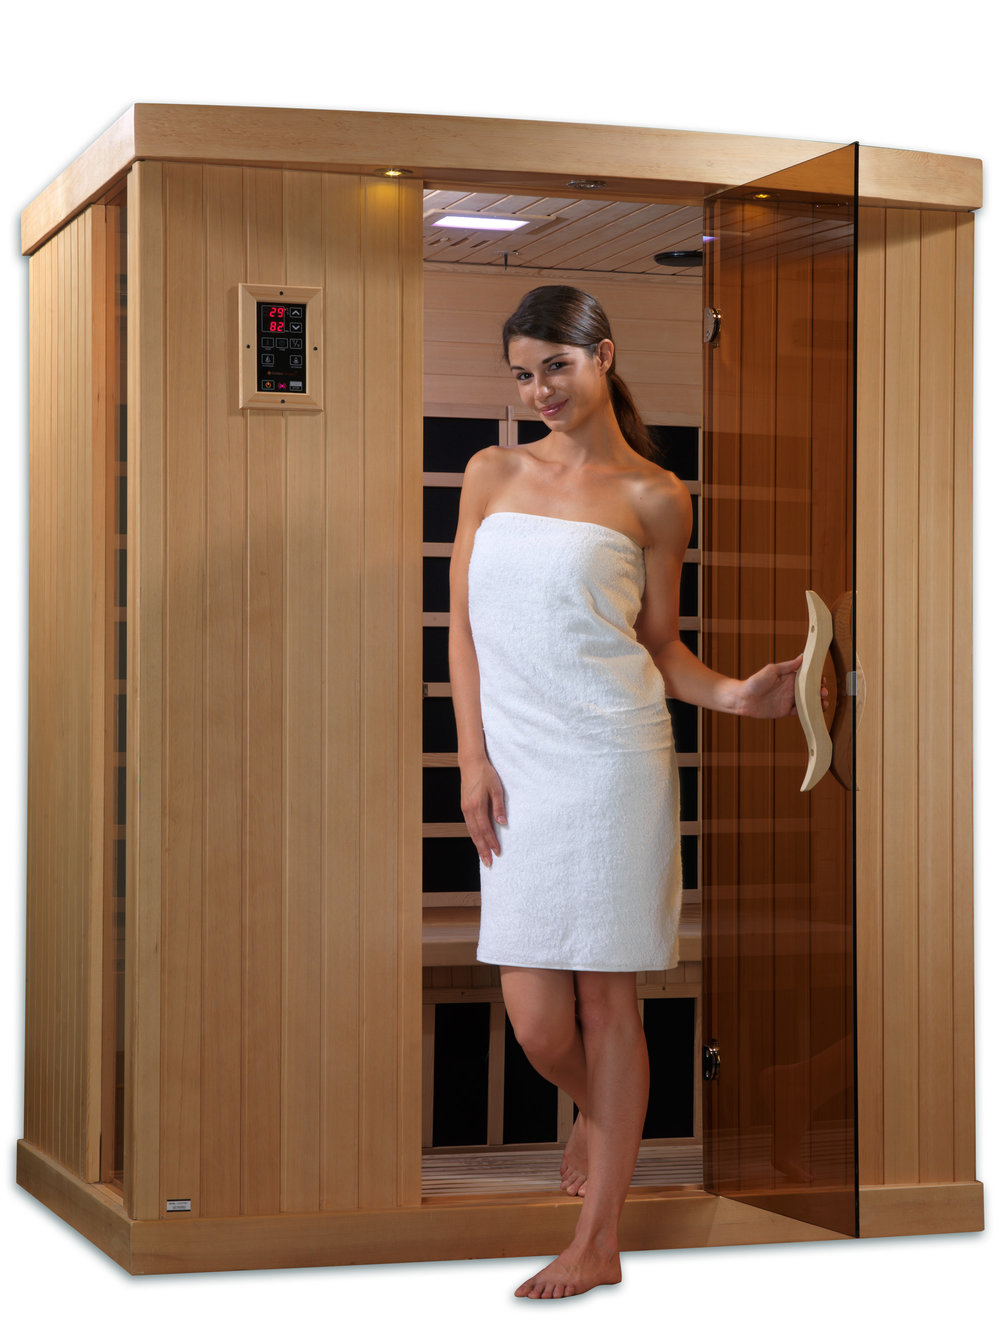 img Infrared Sauna coming to Mana Physical Therapy!